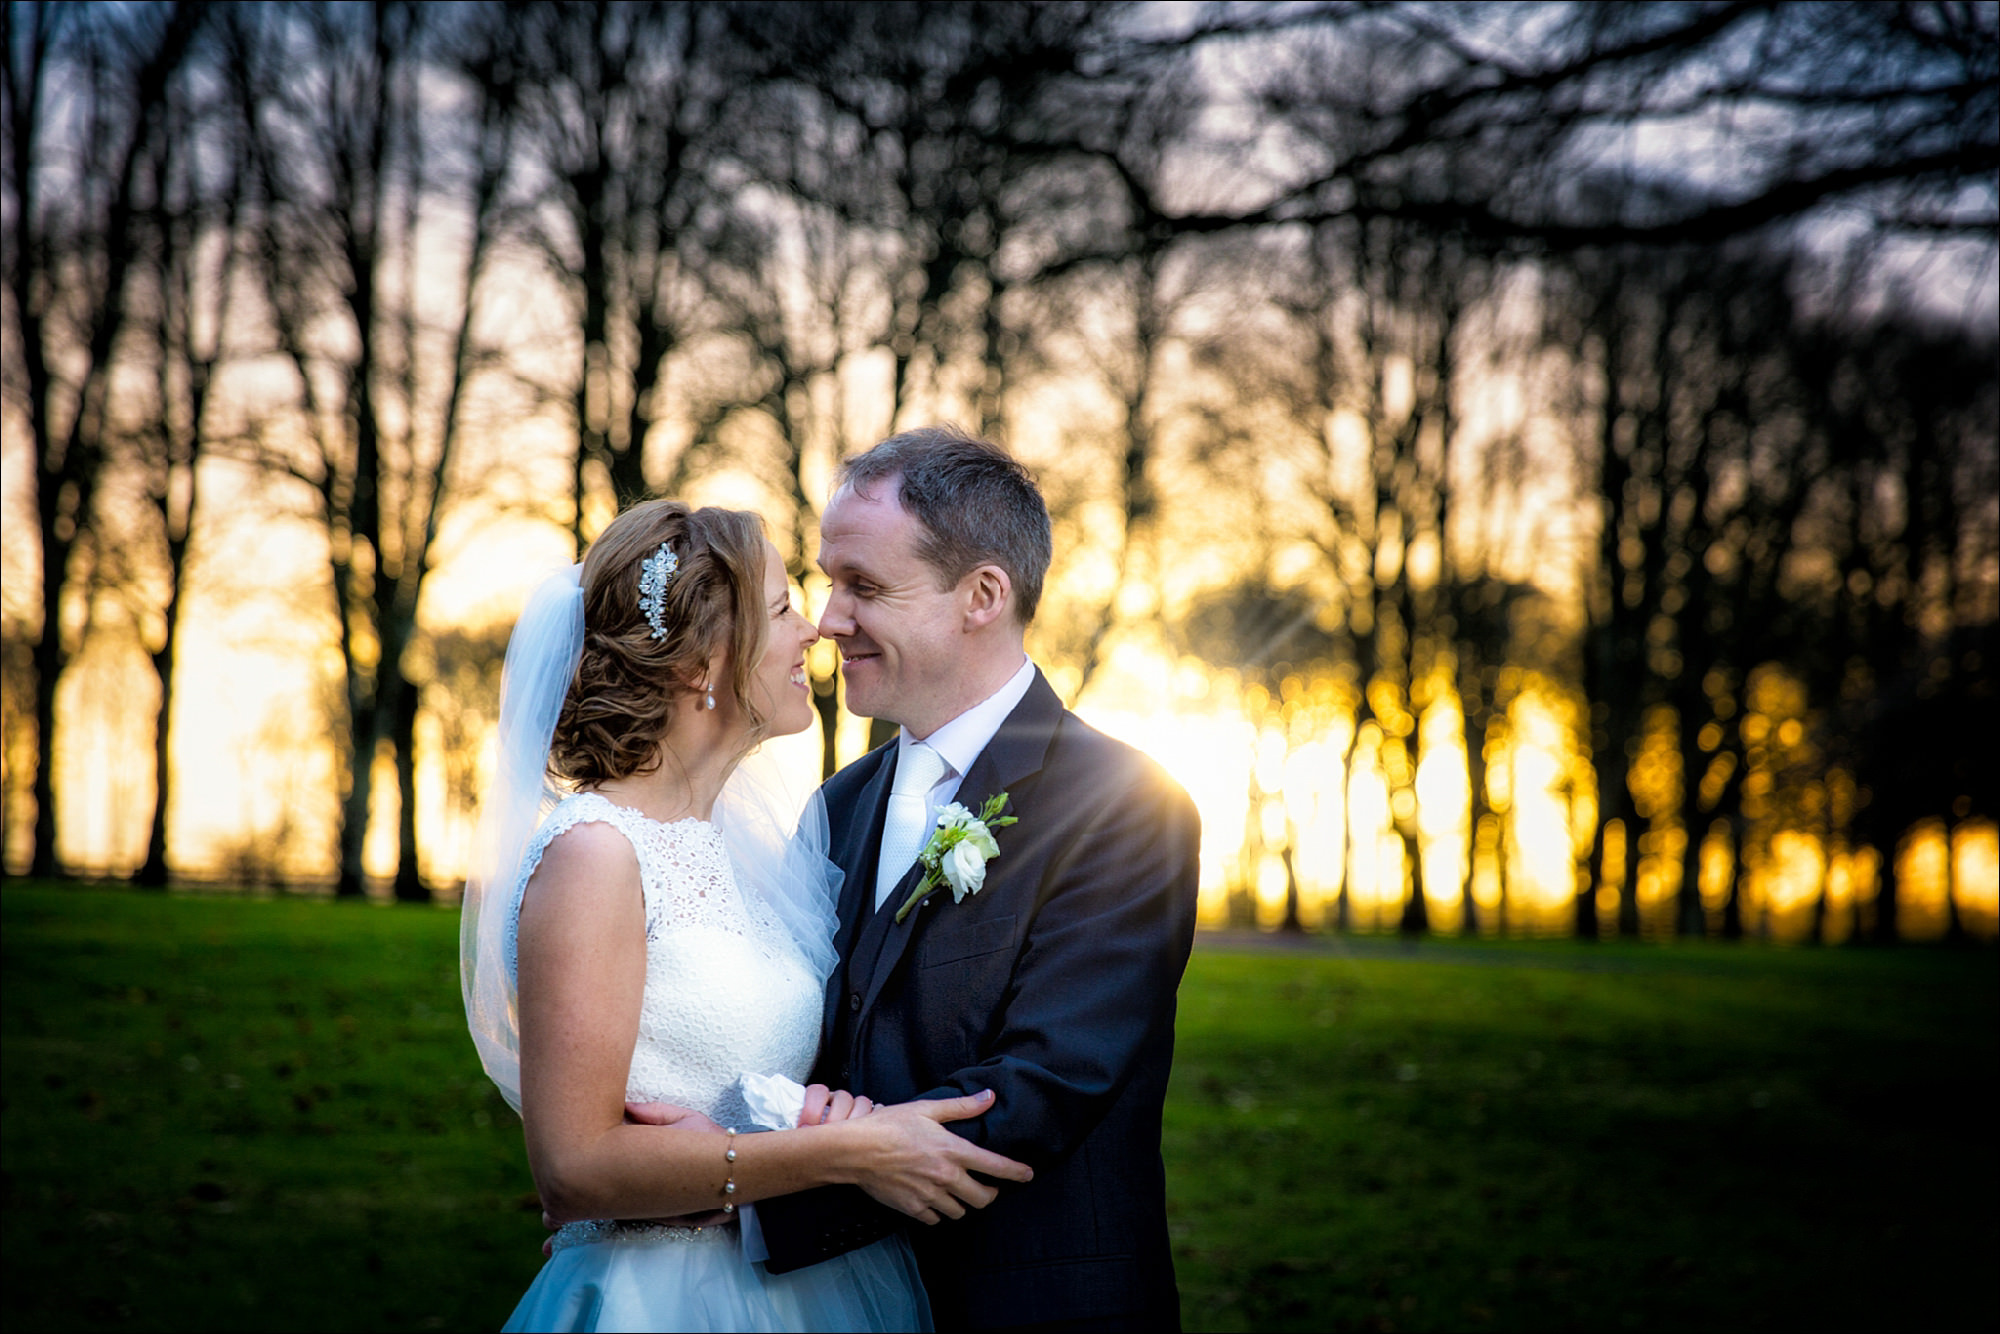 dublin wedding photographer david duignan photography tankardstown weddings slane rathfeigh church ireland 0040